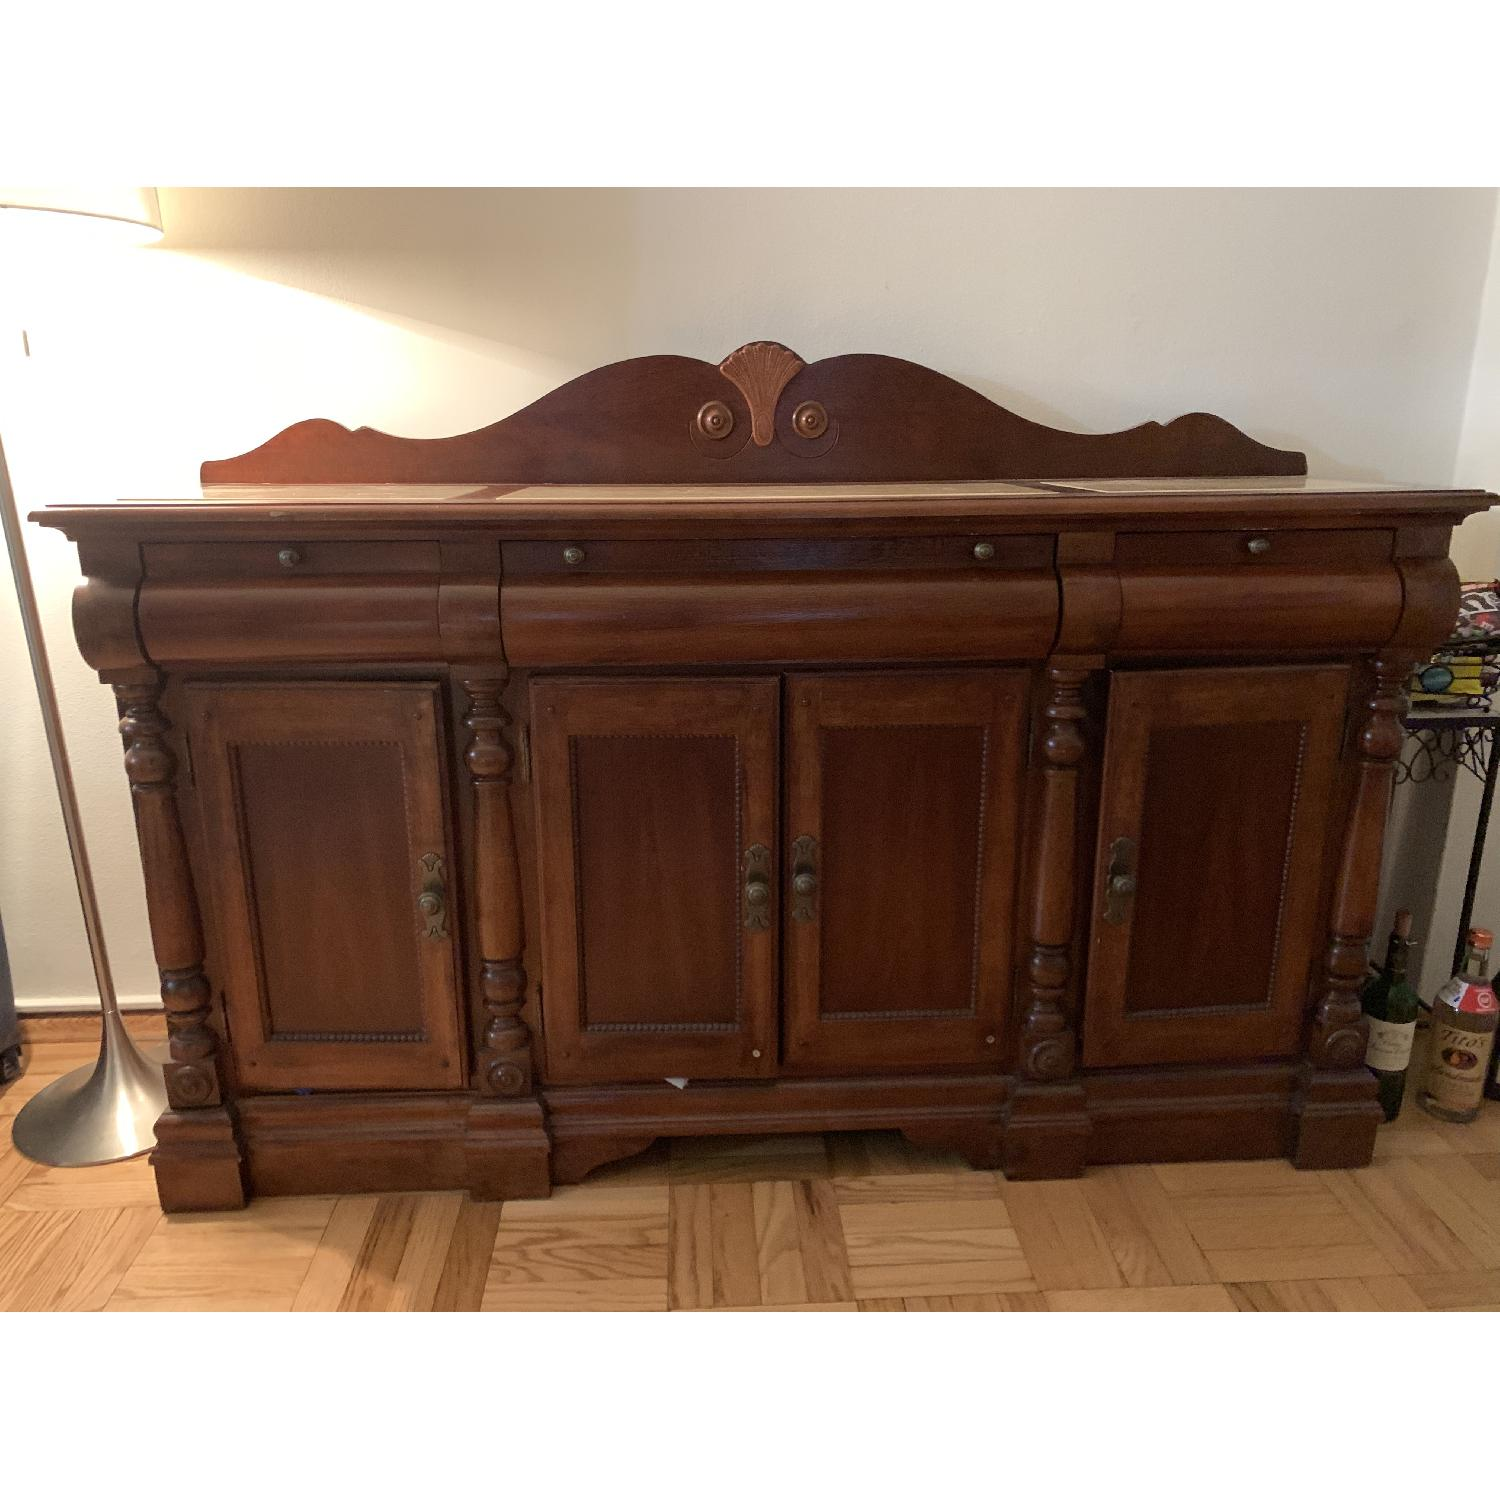 Thomasville Sideboard w/ Marble Top - image-1